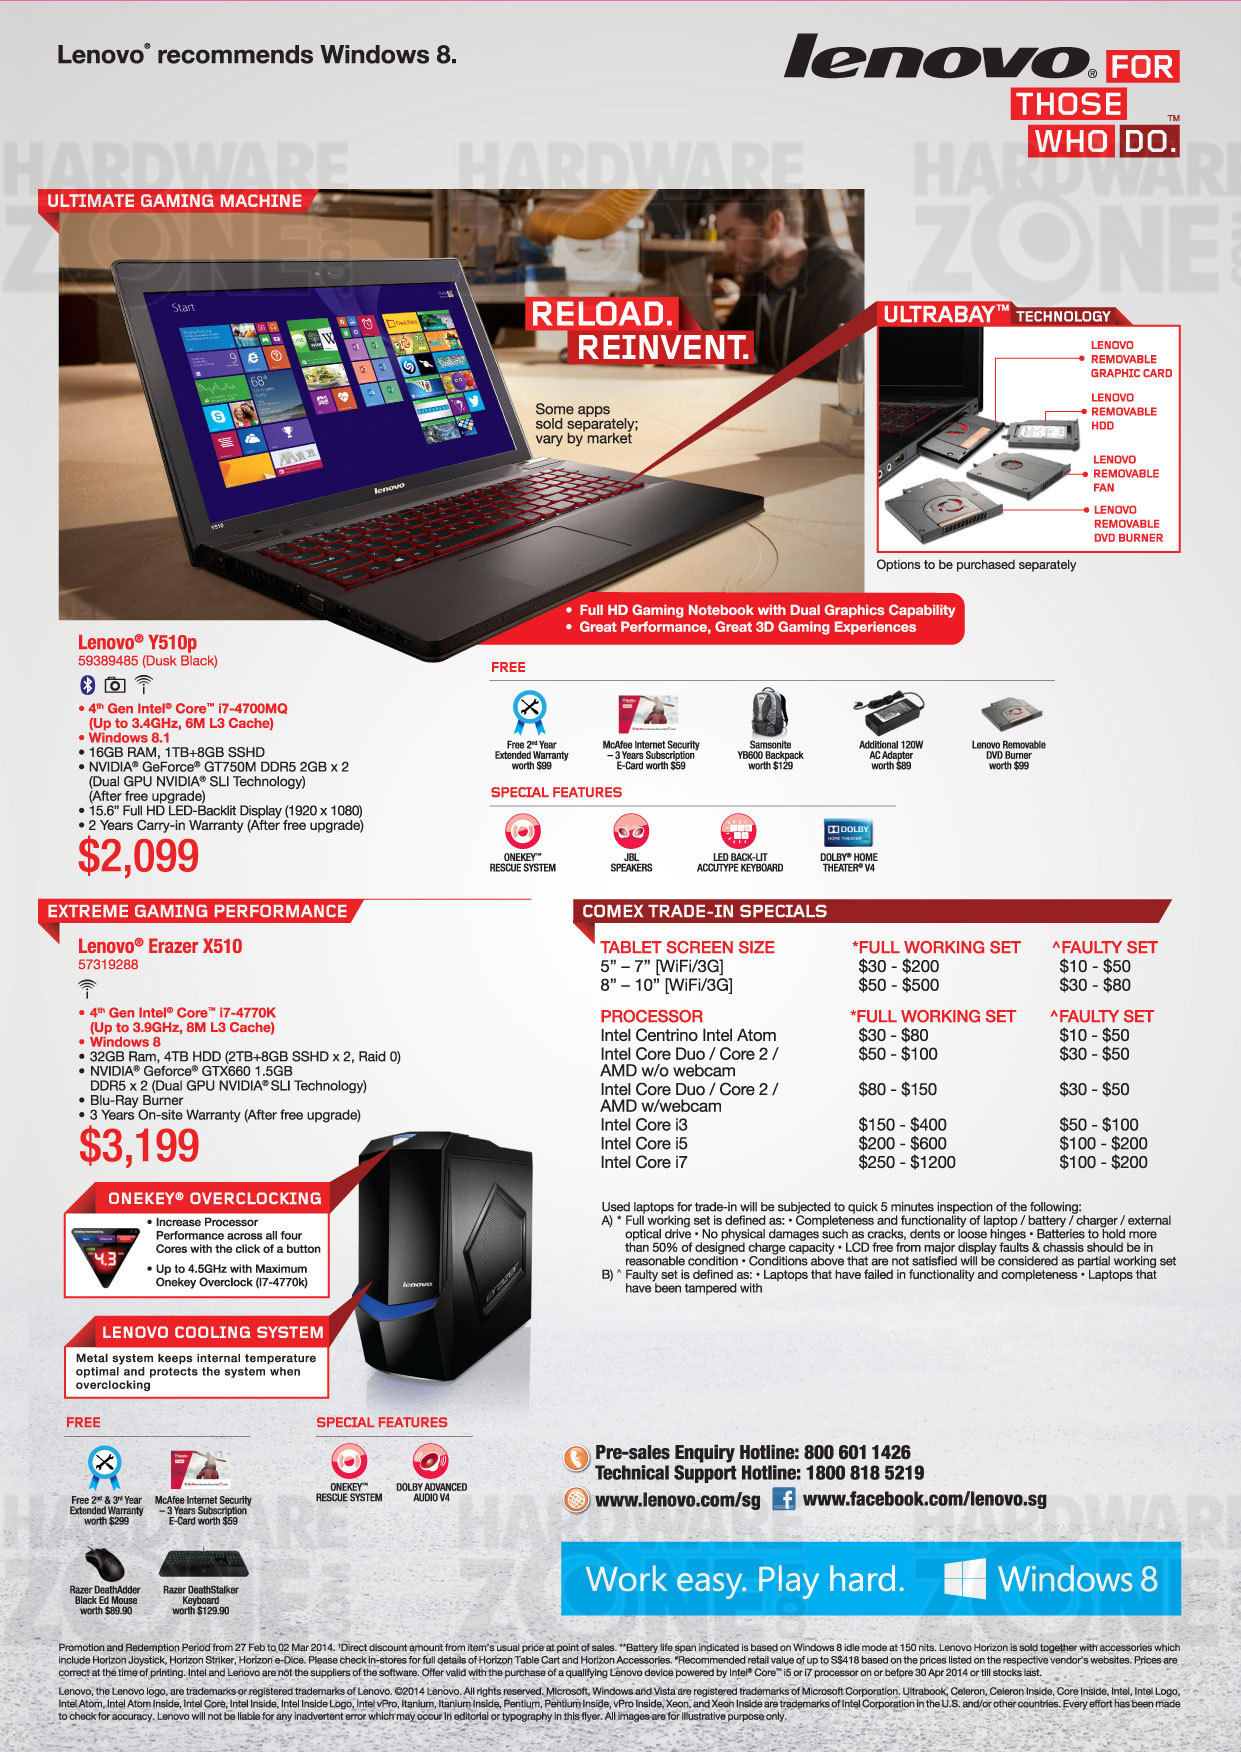 Lenovo gaming machines